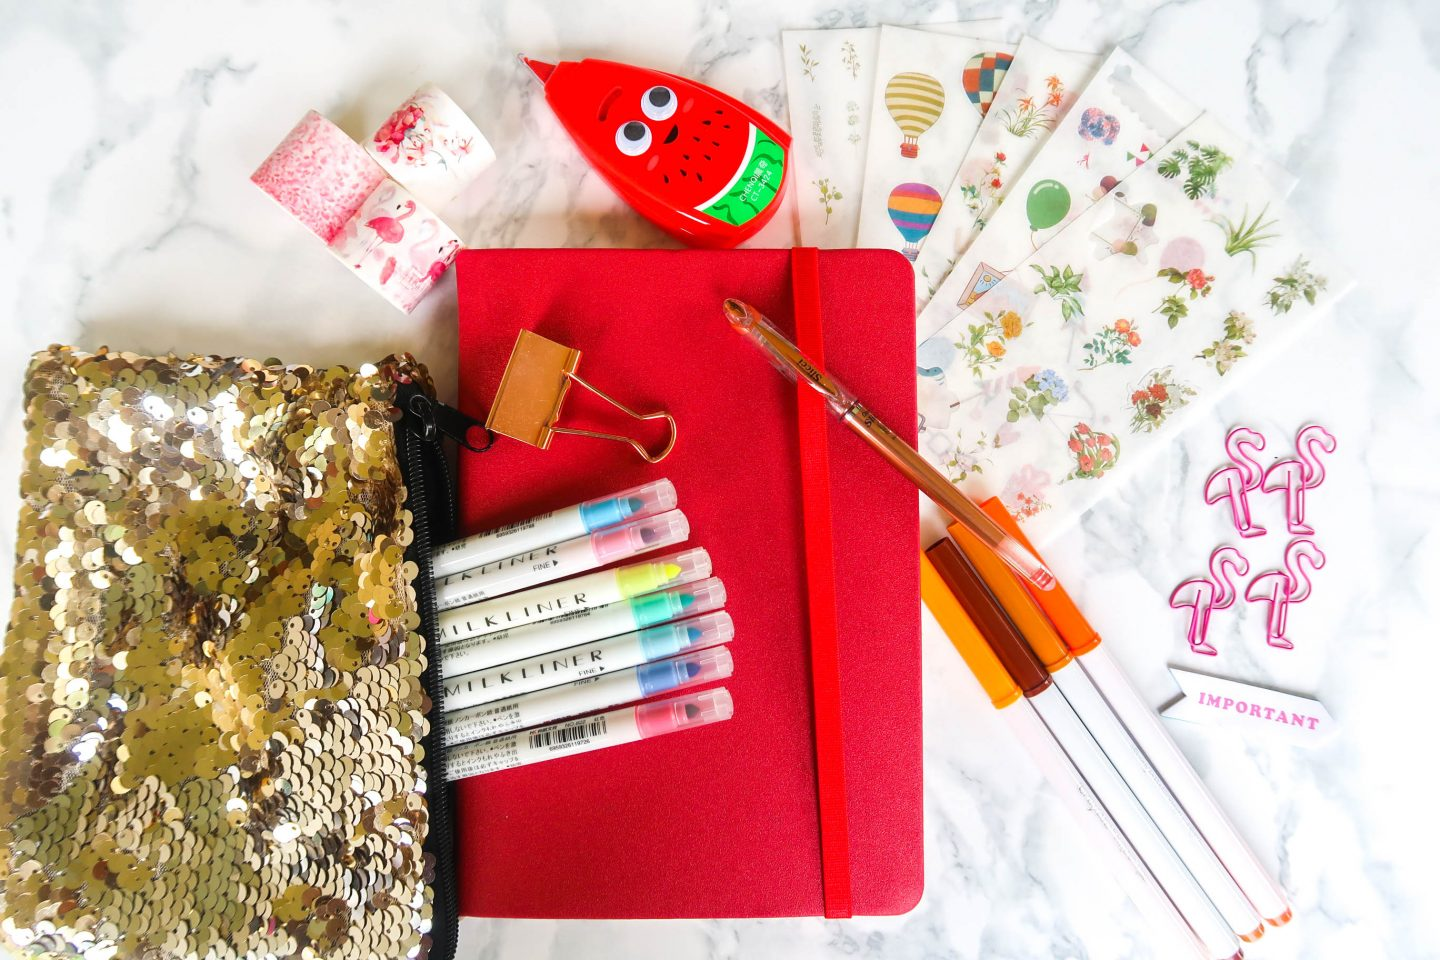 bullet journal supplies – where to buy them in South Africa